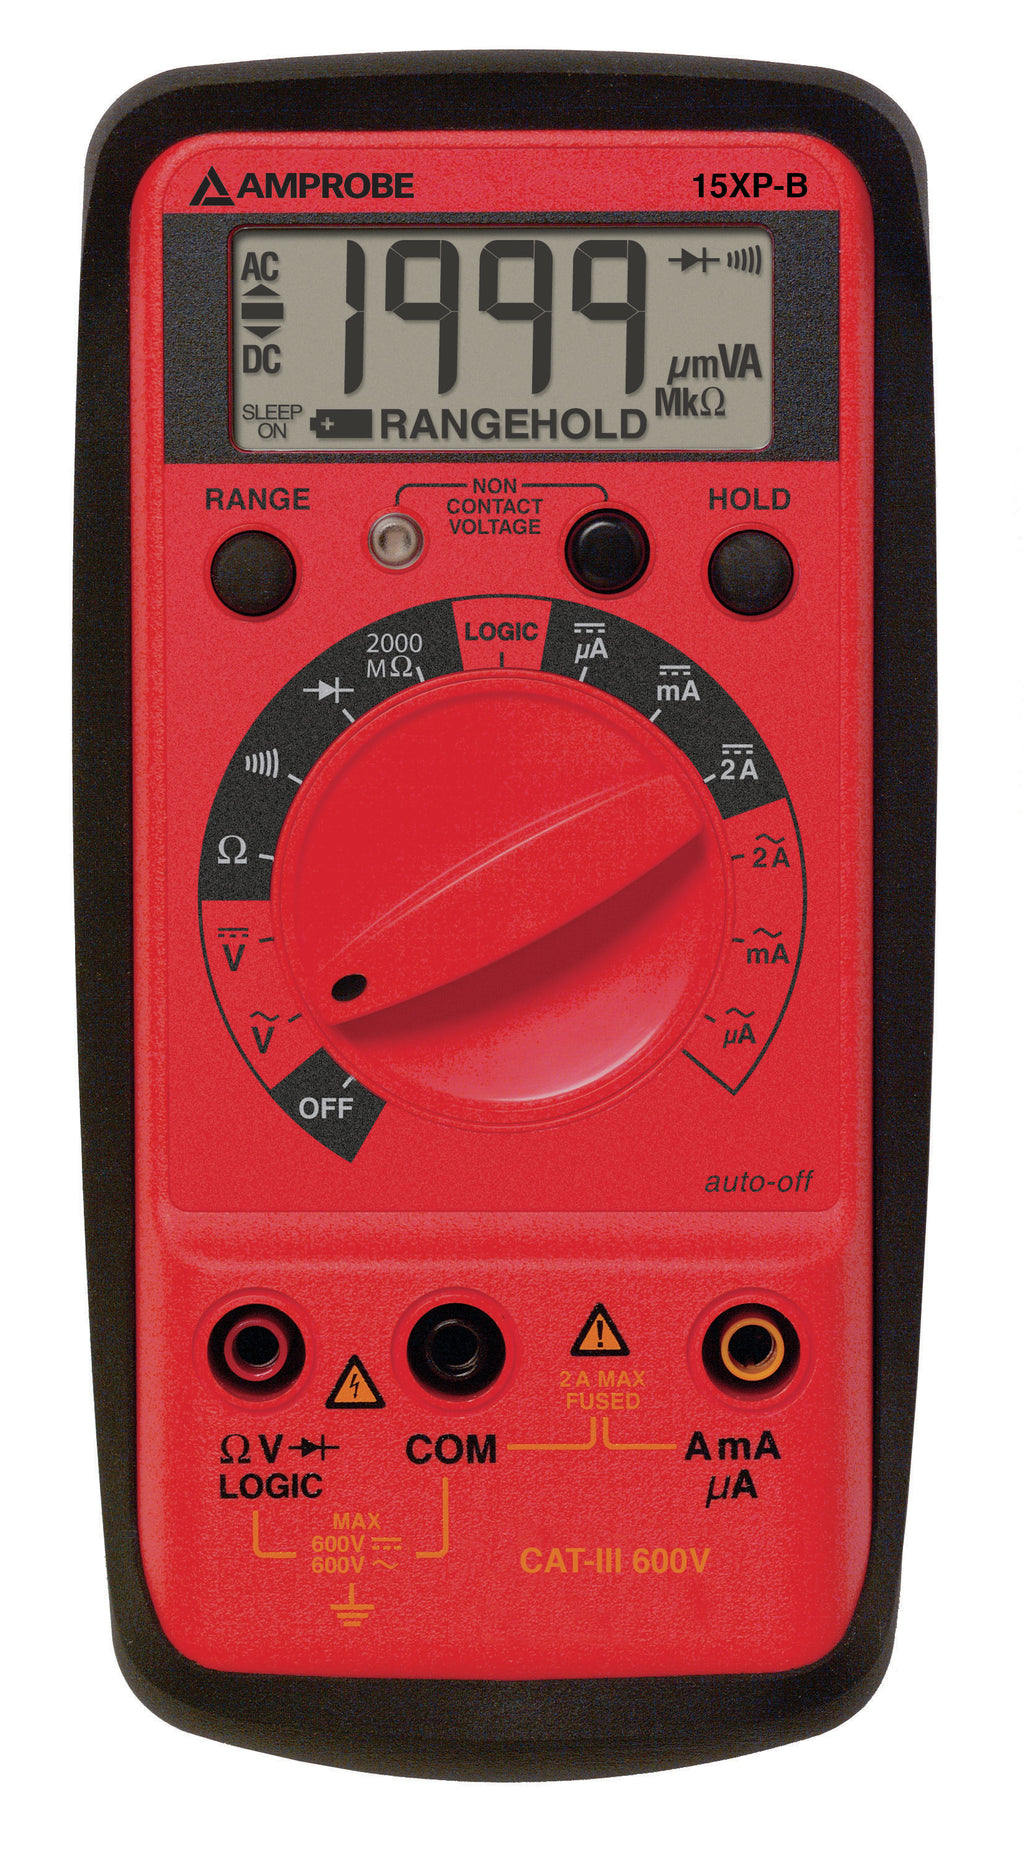 Amprobe 15XP-B Digital Multimeter VolTect™ Non-Contact Voltage Detection